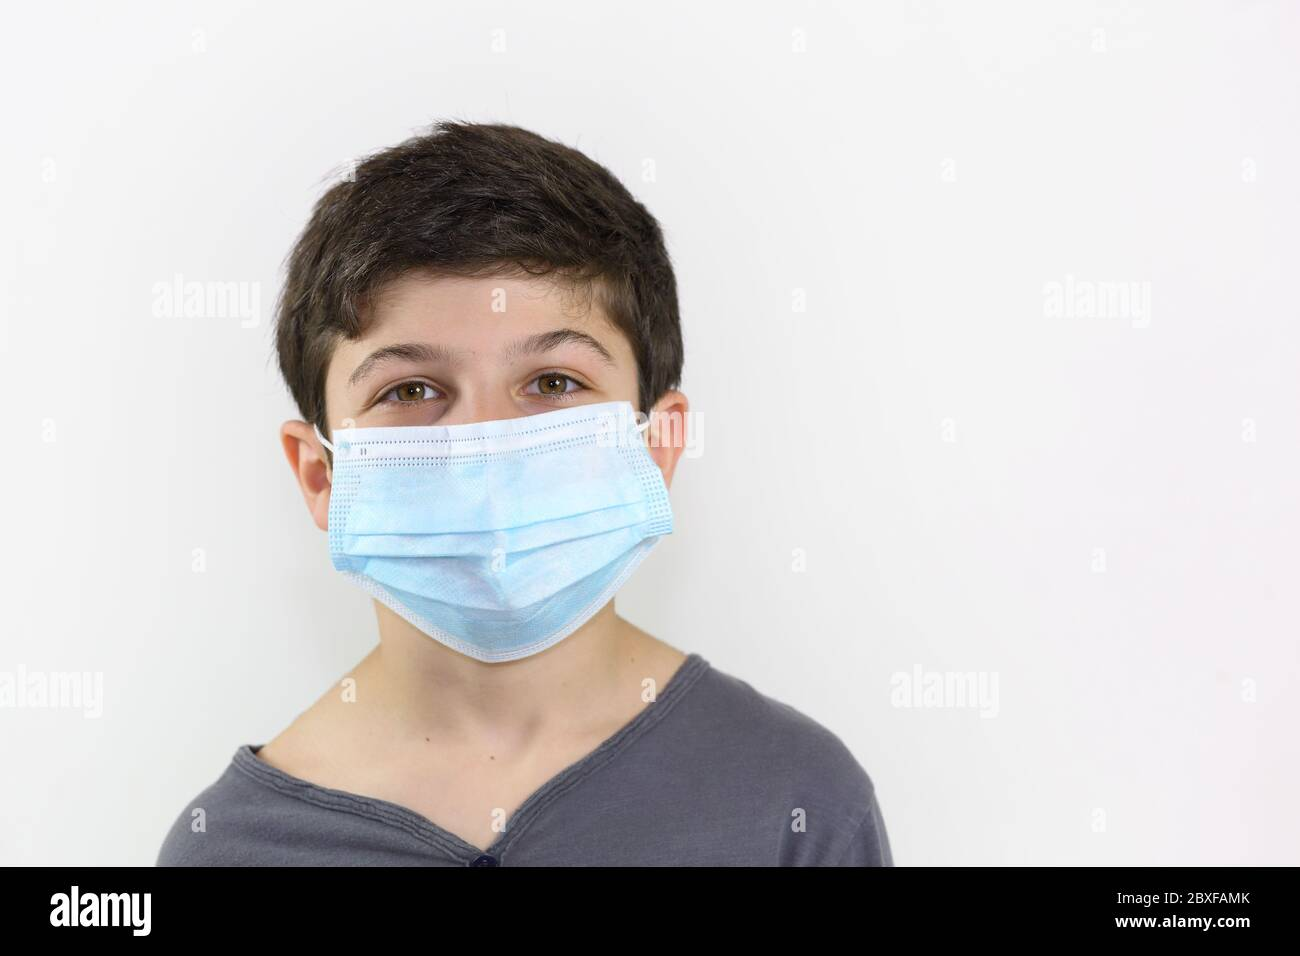 child with a surgical mask on the face - Covid-19 coronavirus barrier gesture well-protected and child who is not afraid to face the epidemic Stock Photo